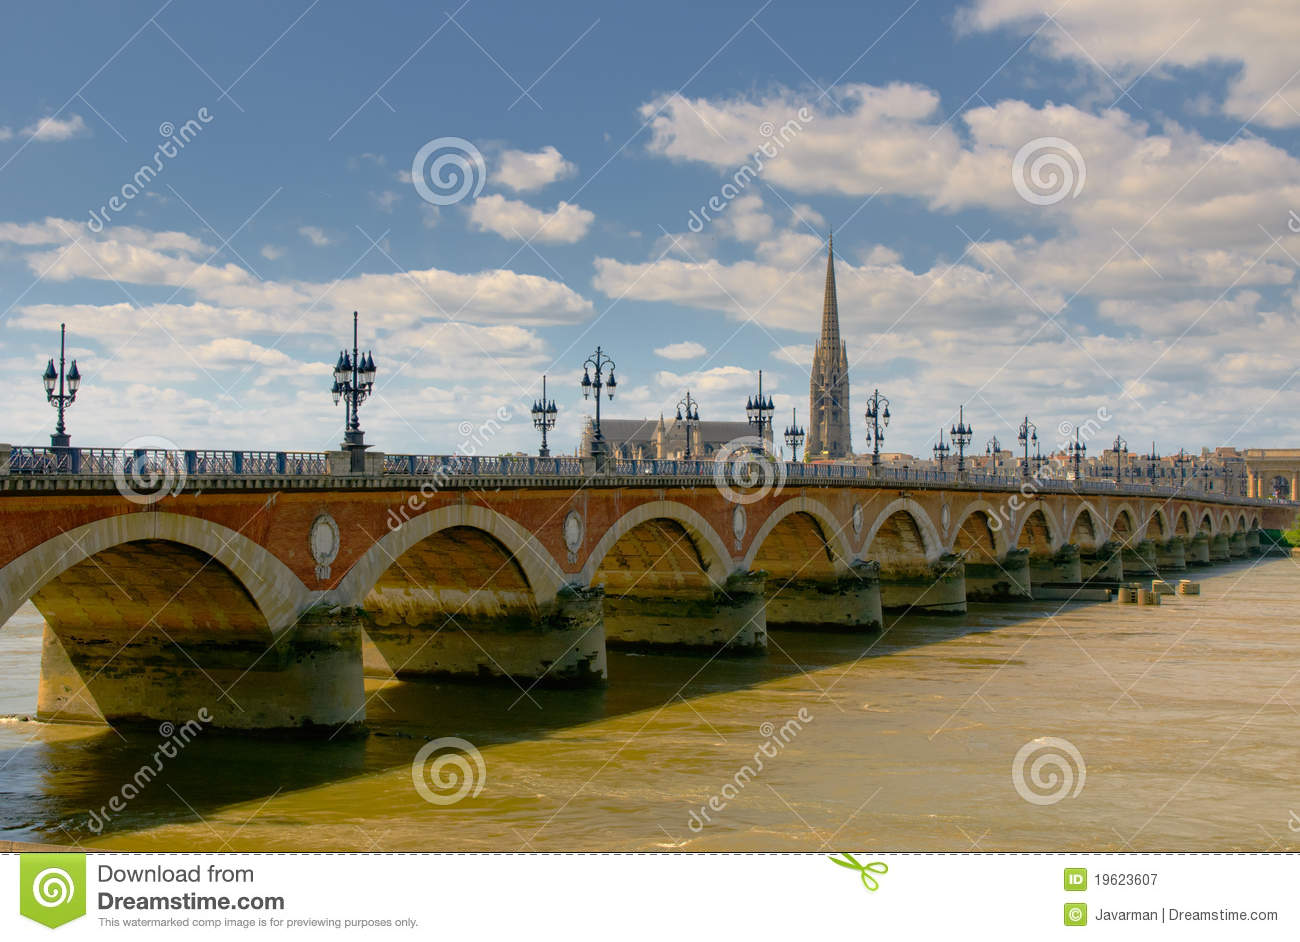 pont de pierre bordeaux france photographie stock libre de droits image 19623607. Black Bedroom Furniture Sets. Home Design Ideas